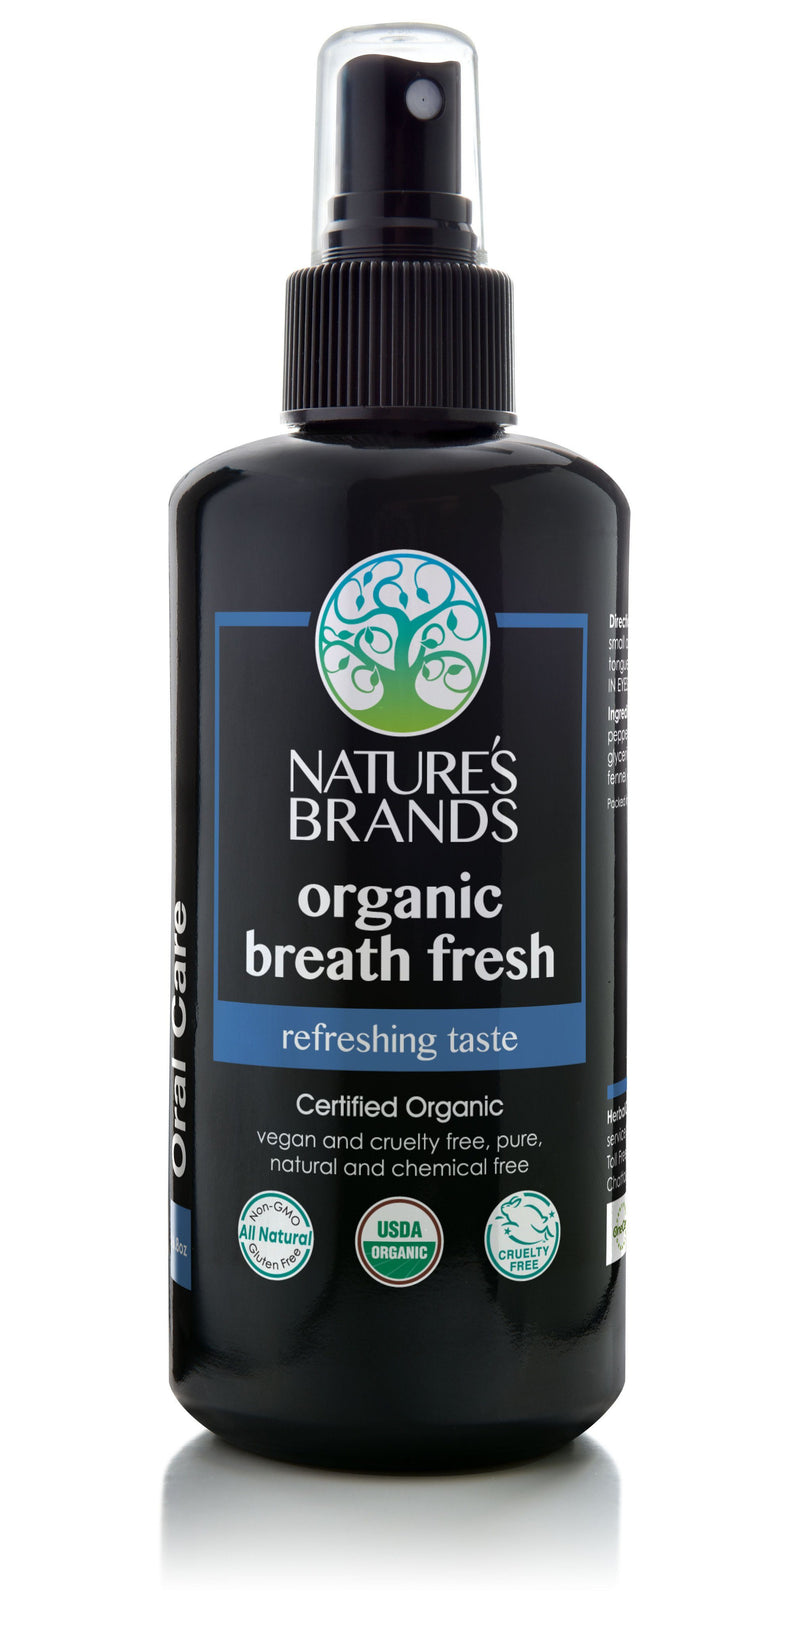 Herbal Choice Mari Organic Breath Fresh - Herbal Choice Mari Organic Breath Fresh - 6.8floz